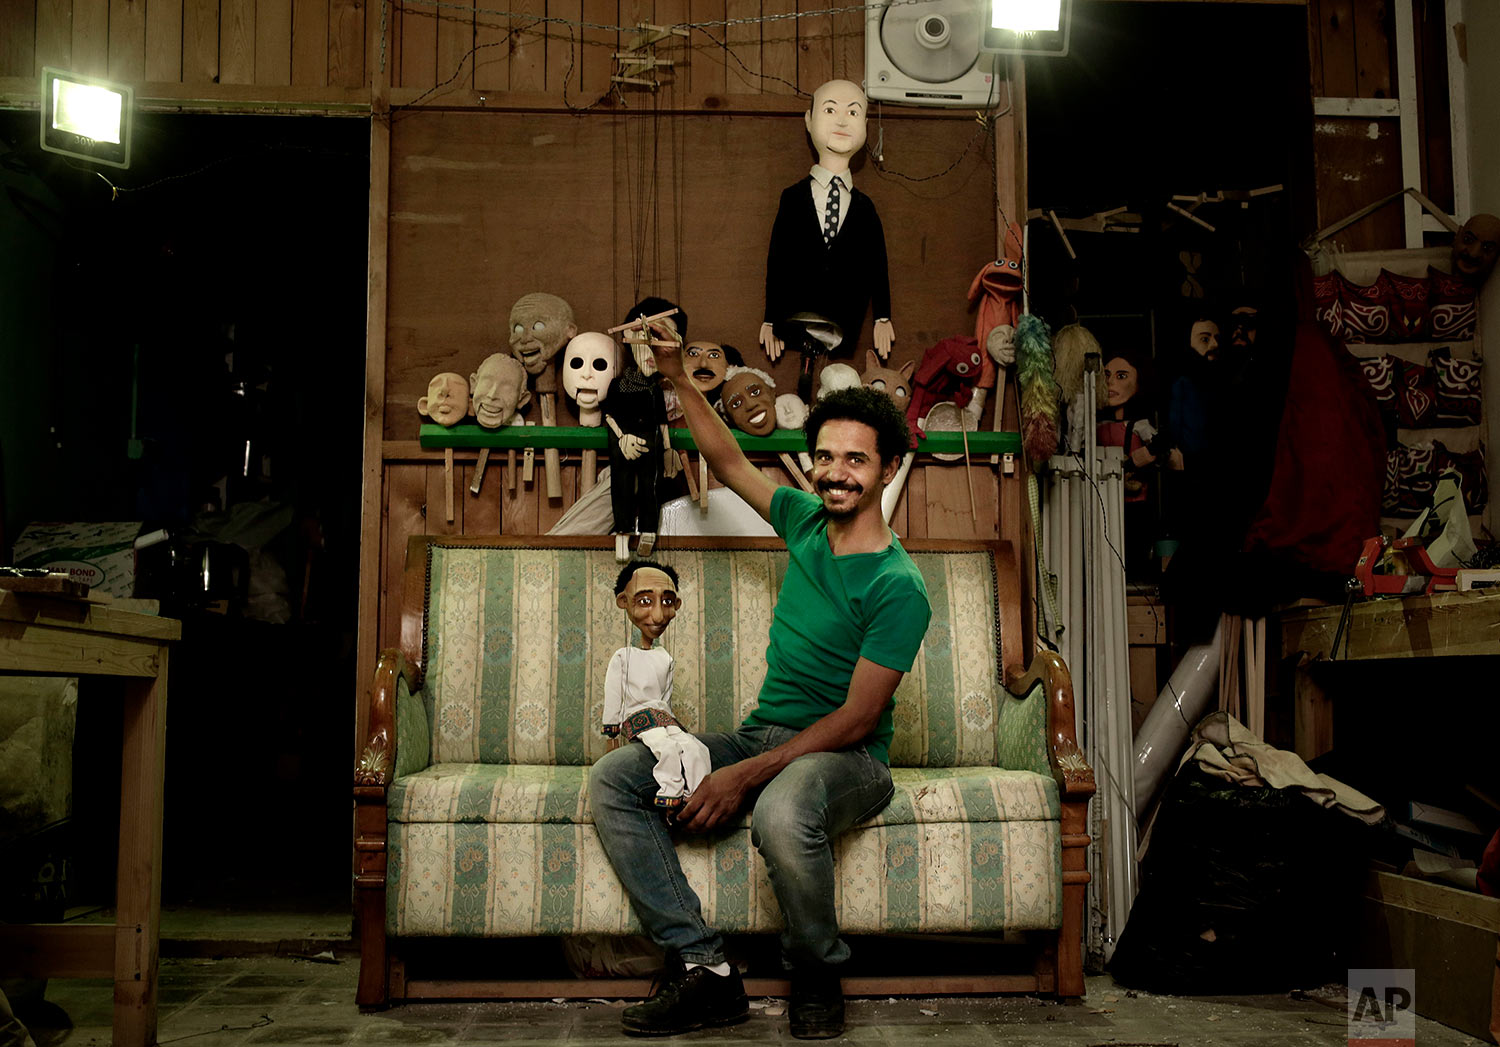 Egyptian artist Mohamed Fawzi Bakkar poses for a photograph with his favorite puppets at his workshop, in Cairo, Egypt, April 24, 2018.(AP Photo/Nariman El-Mofty)